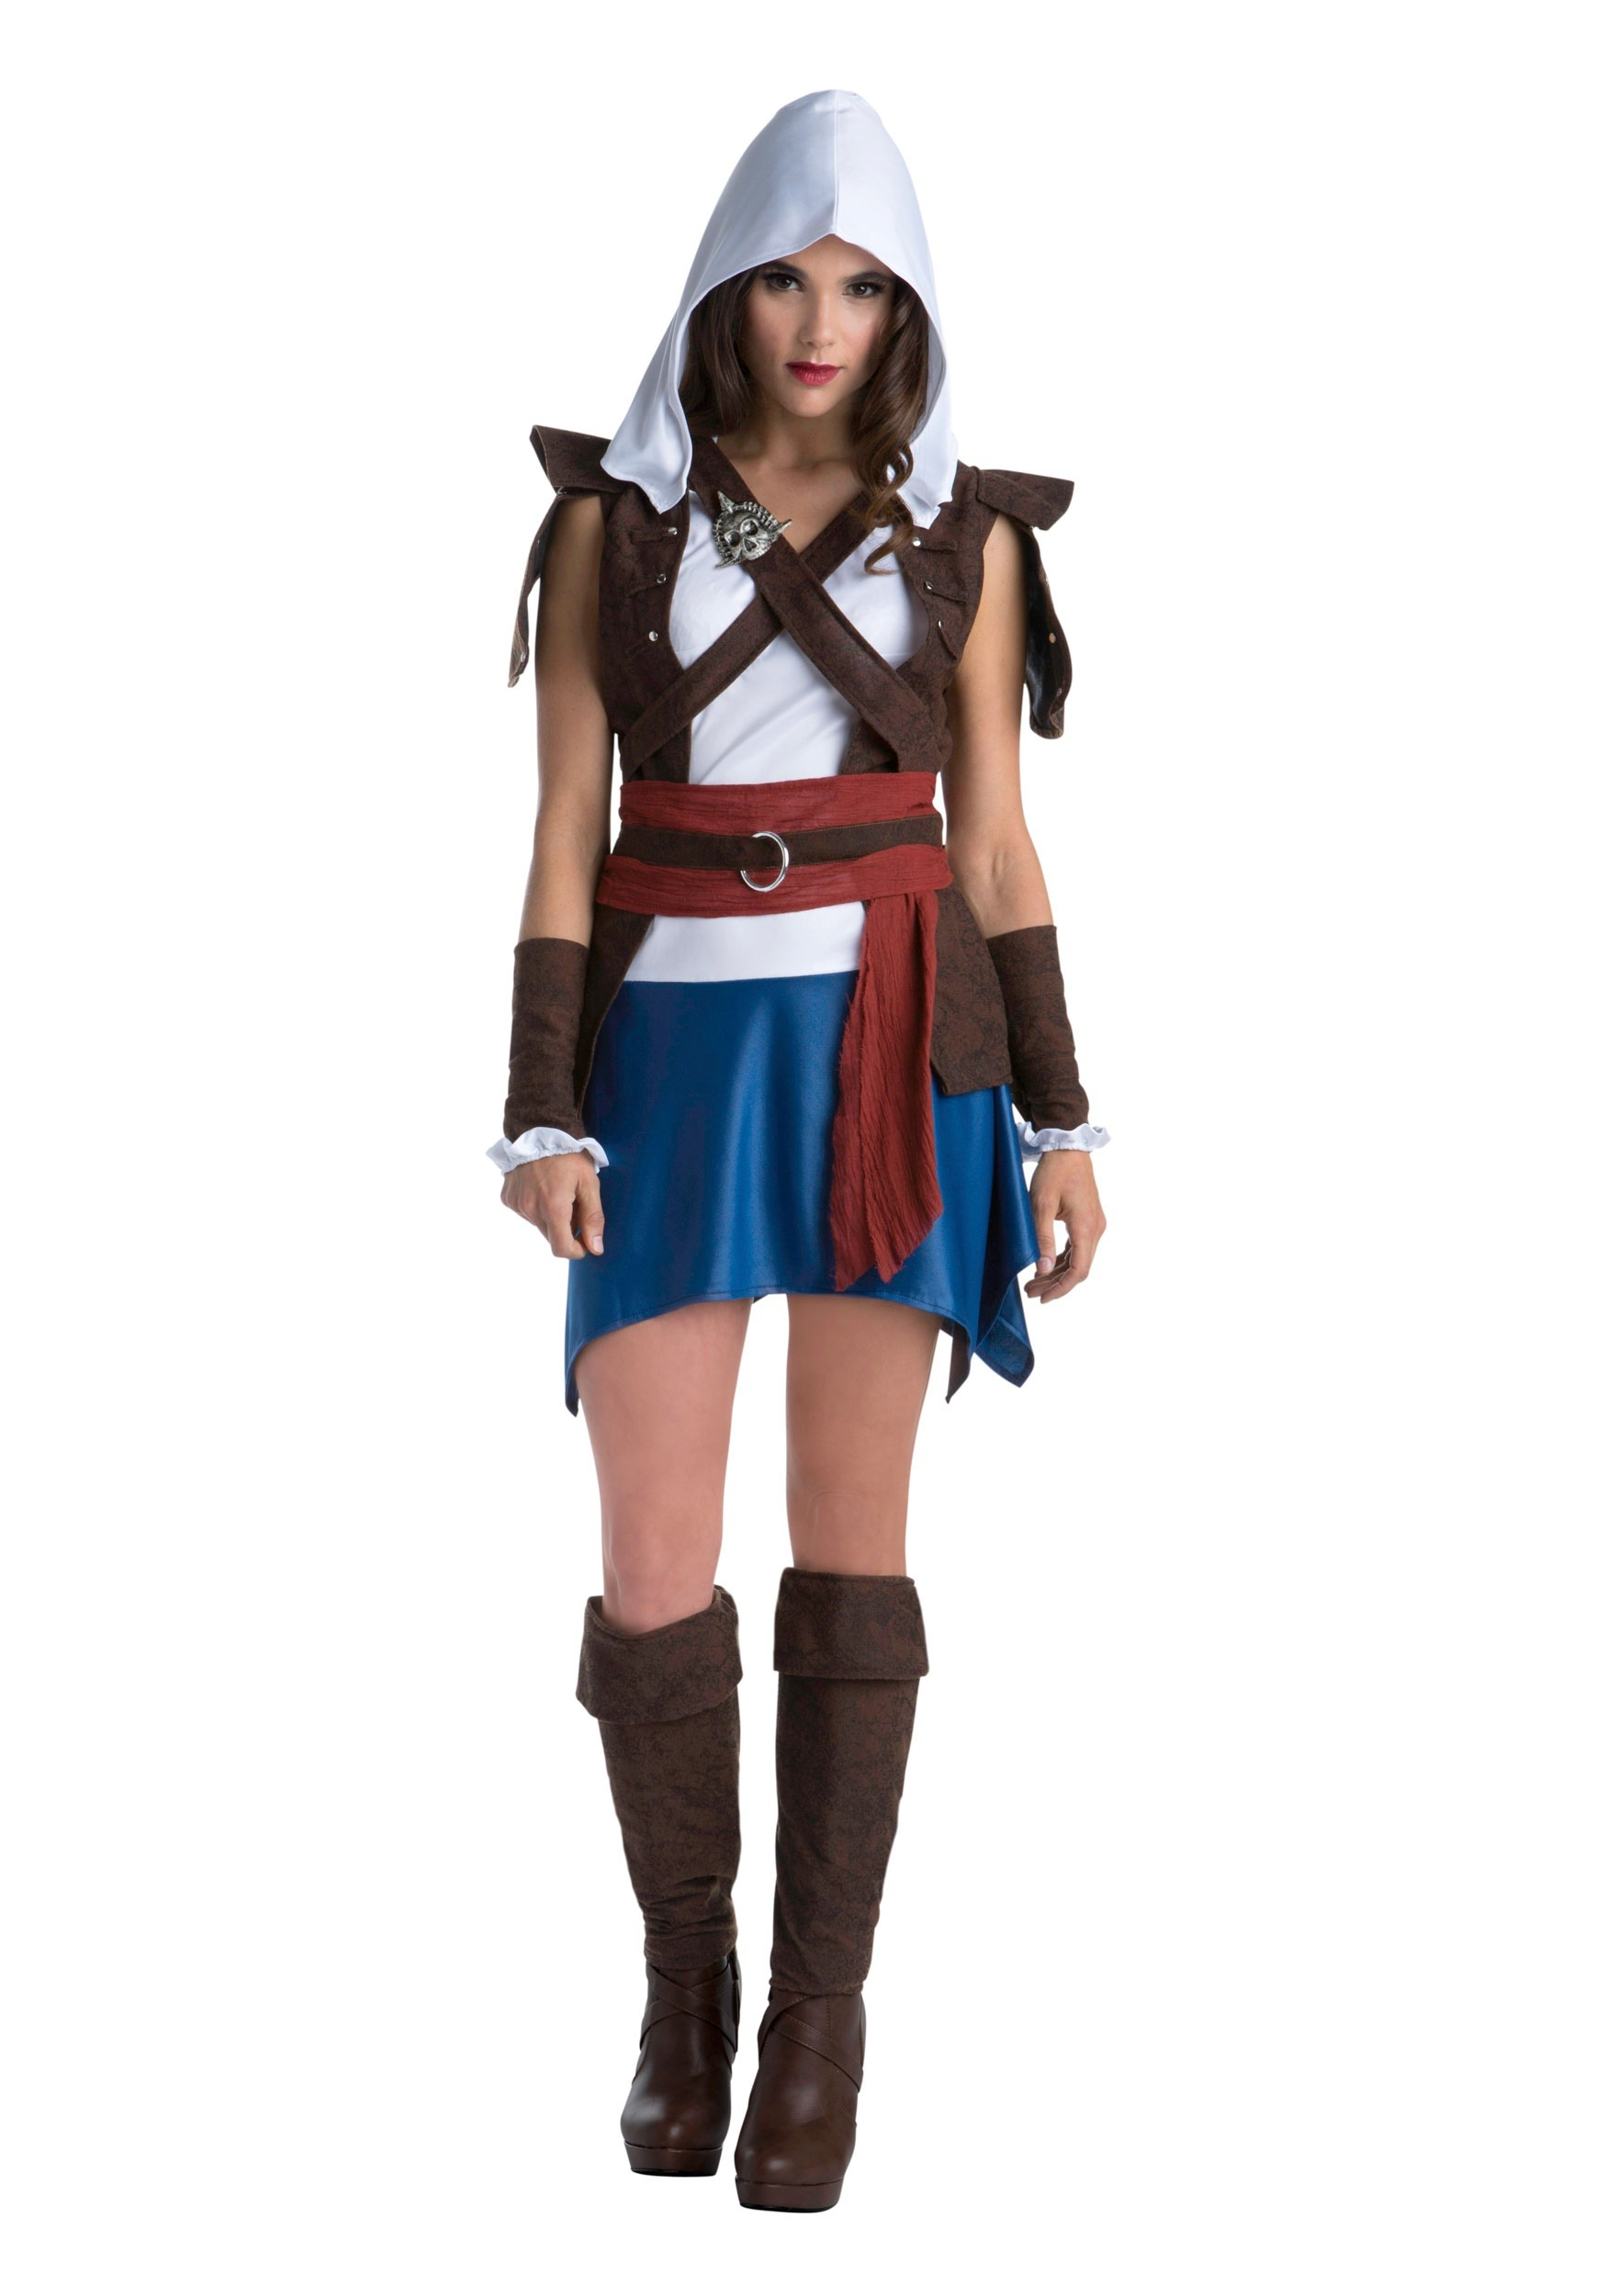 INOpets.com Anything for Pets Parents & Their Pets Assassins Creed Edward Kenway Classic Costume for Women